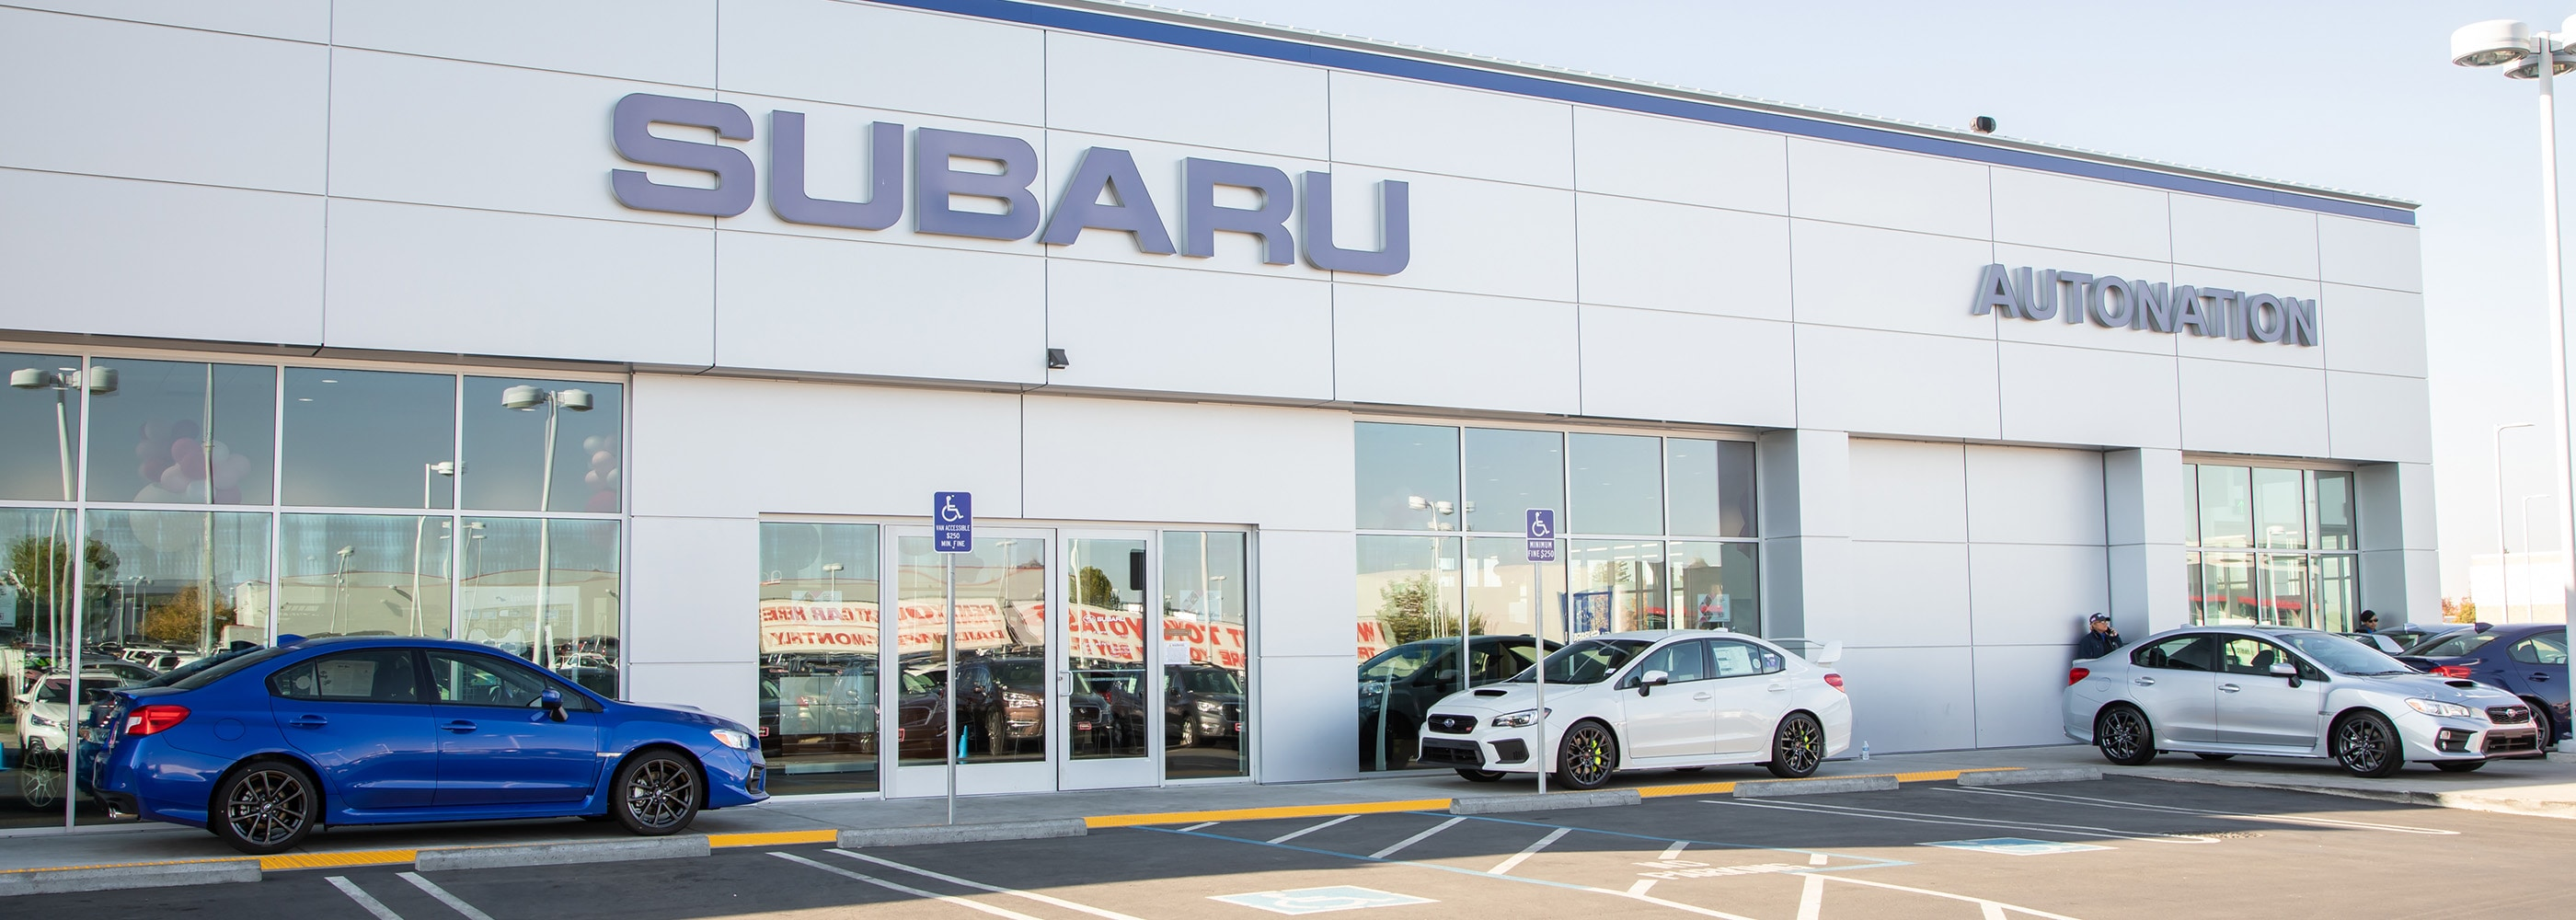 Auto Nation Subaru >> Hours Directions Autonation Subaru Roseville